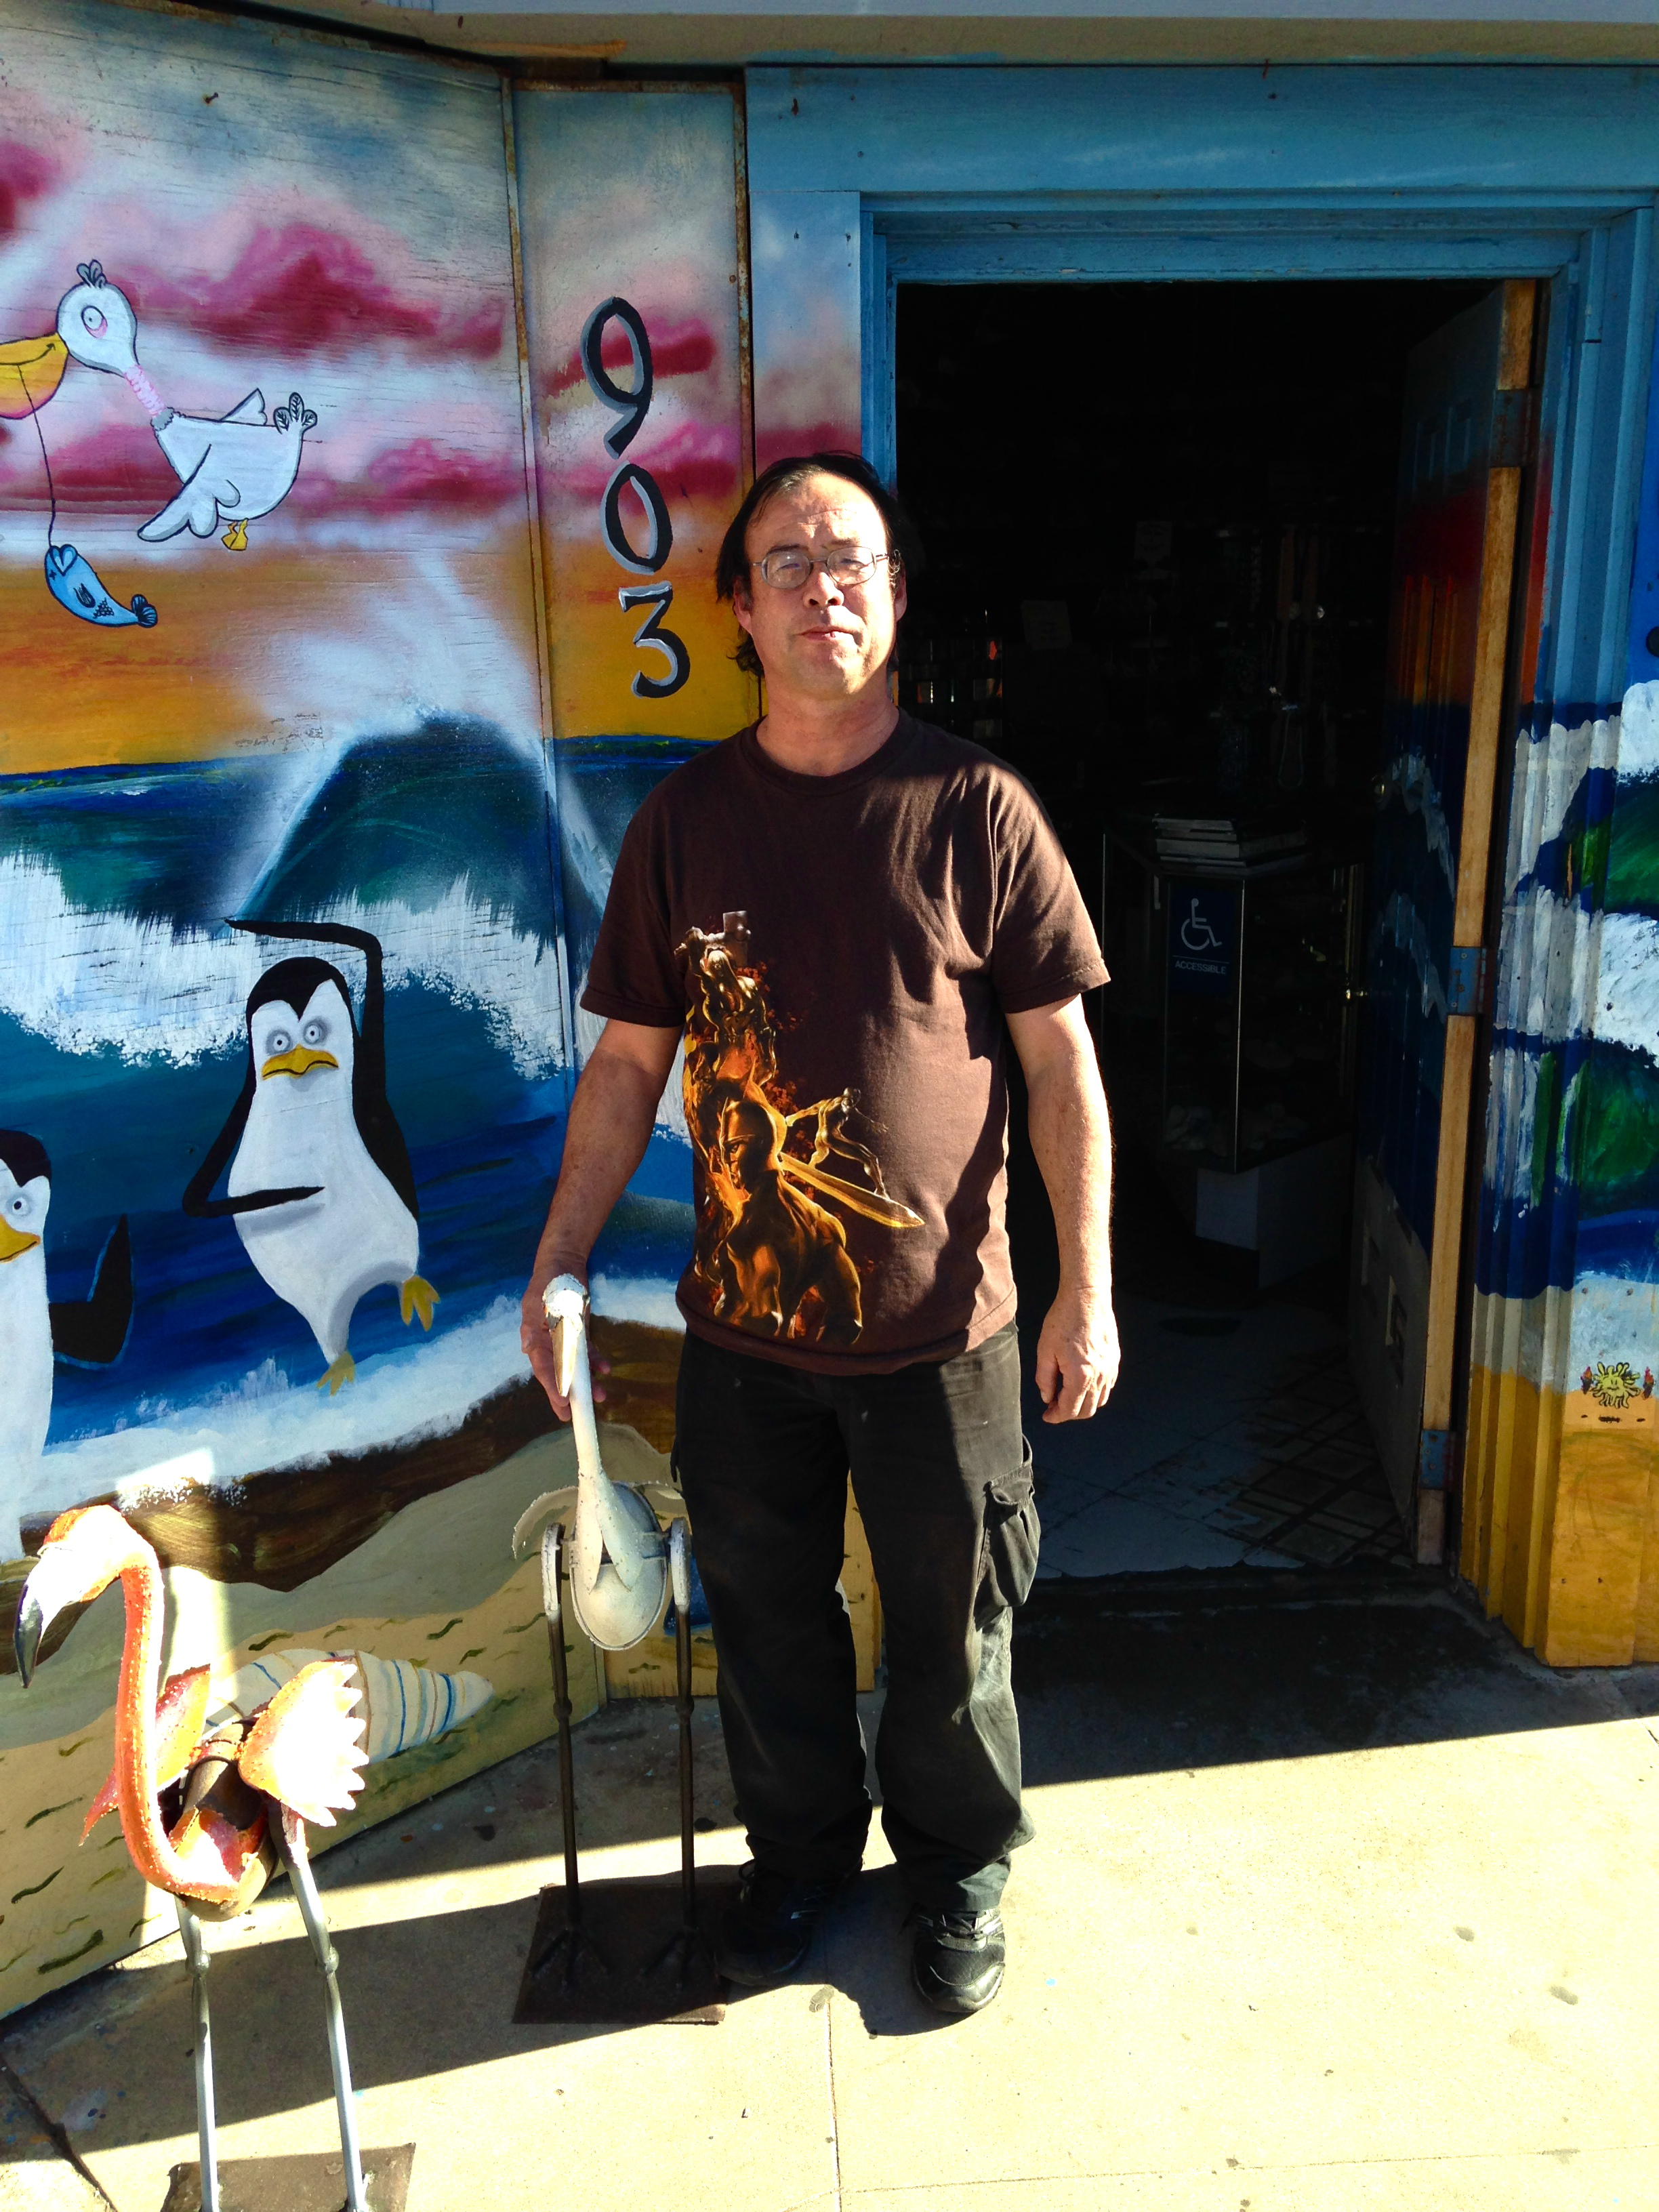 Mike Bibbey, the owner of Bibbey's Shell Shop, is awesome--full of energy, passion and creativity.